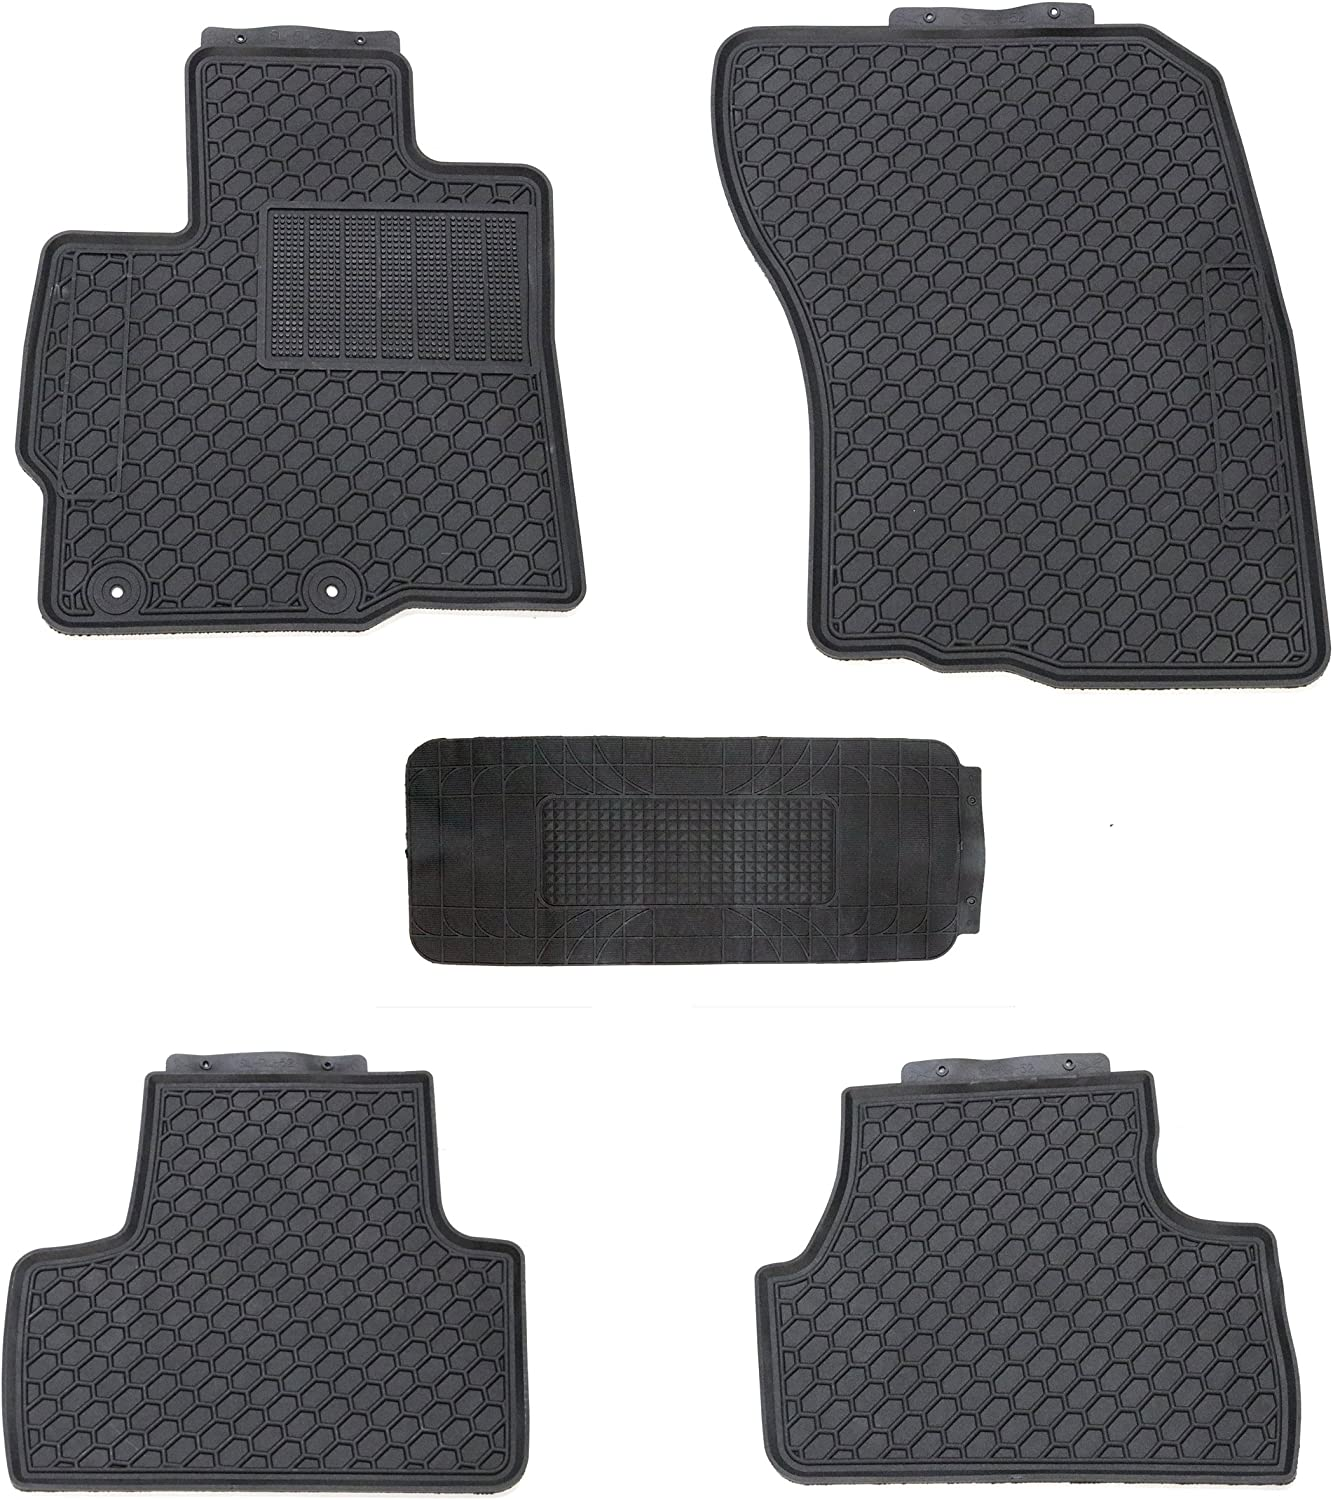 Black AutoTech Zone Custom Fit Heavy Duty Custom Fit Car Floor Mat for 2014-2018 Mitsubishi Outlander SUV All Weather Protector 4 piece set